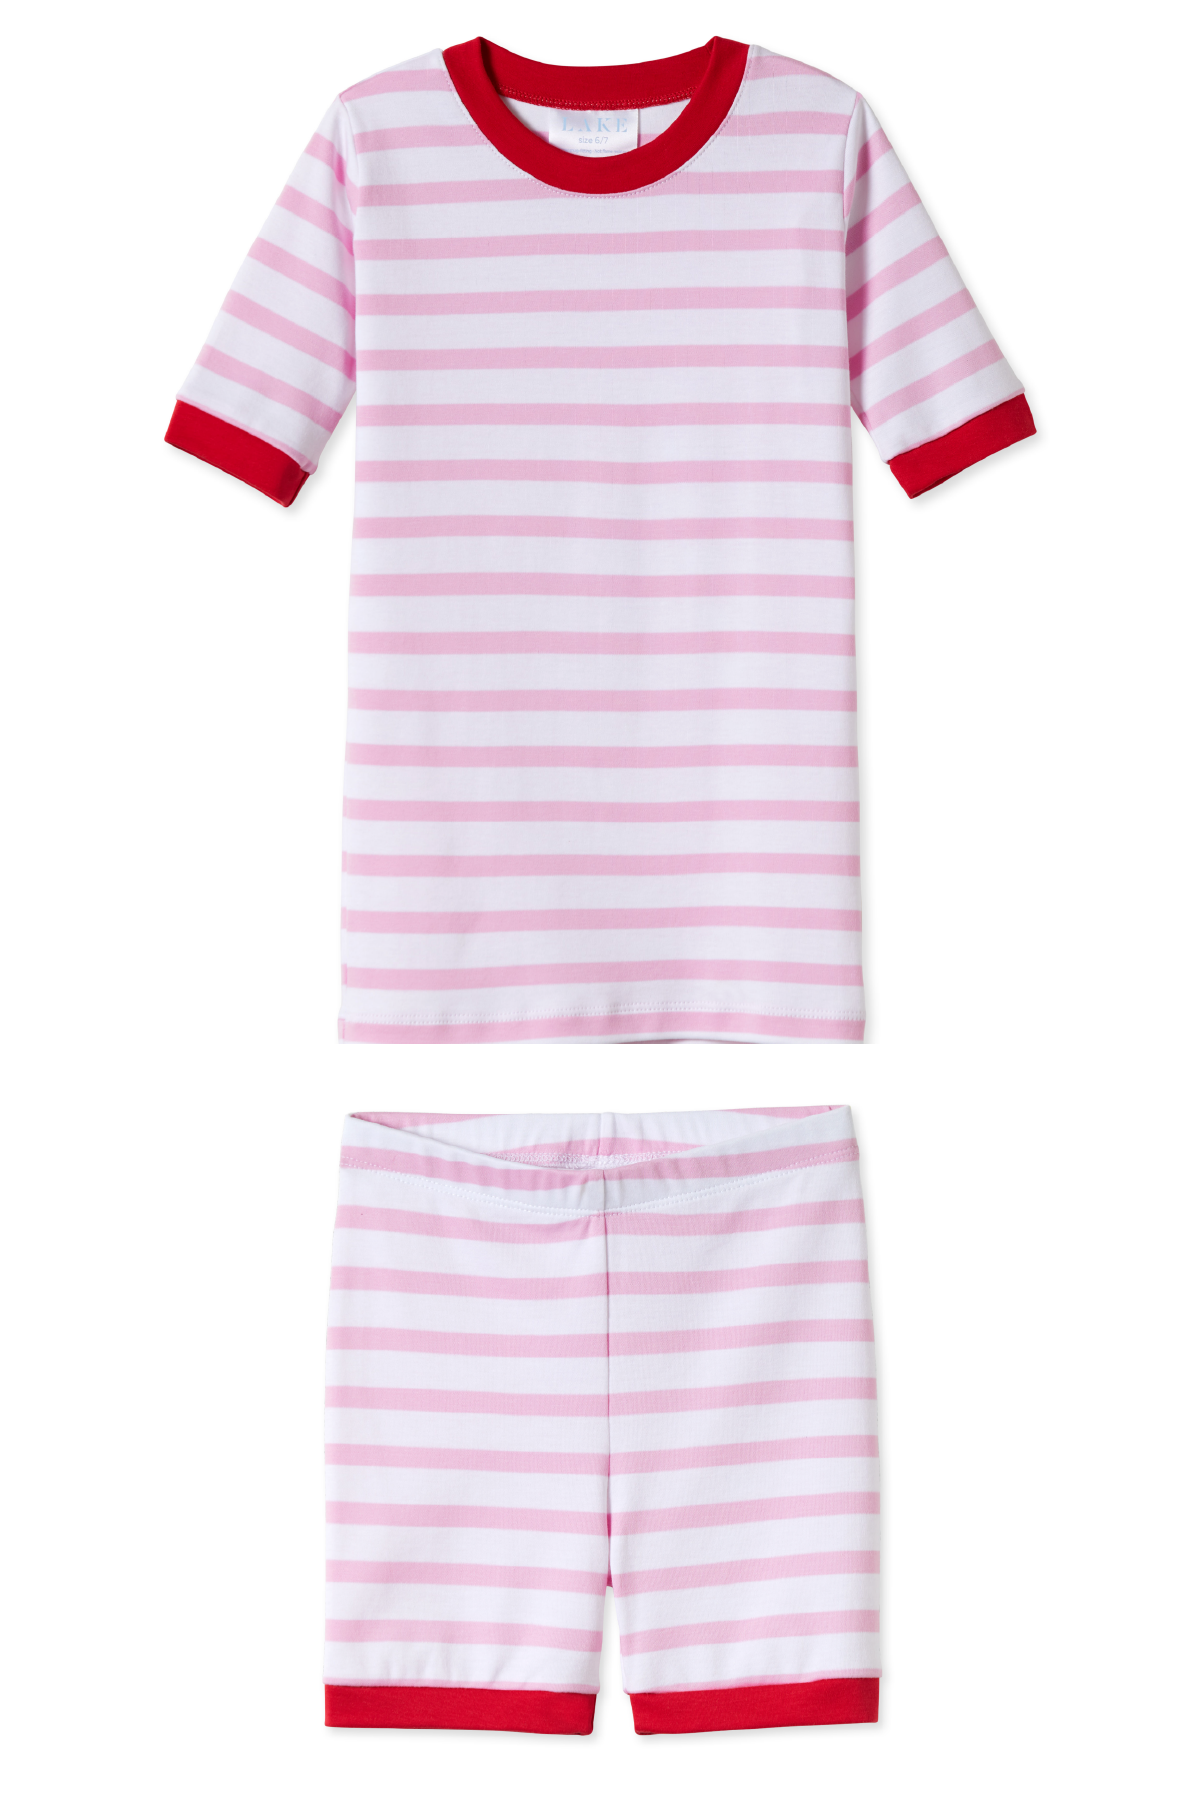 Kids Shorts Set in Charm